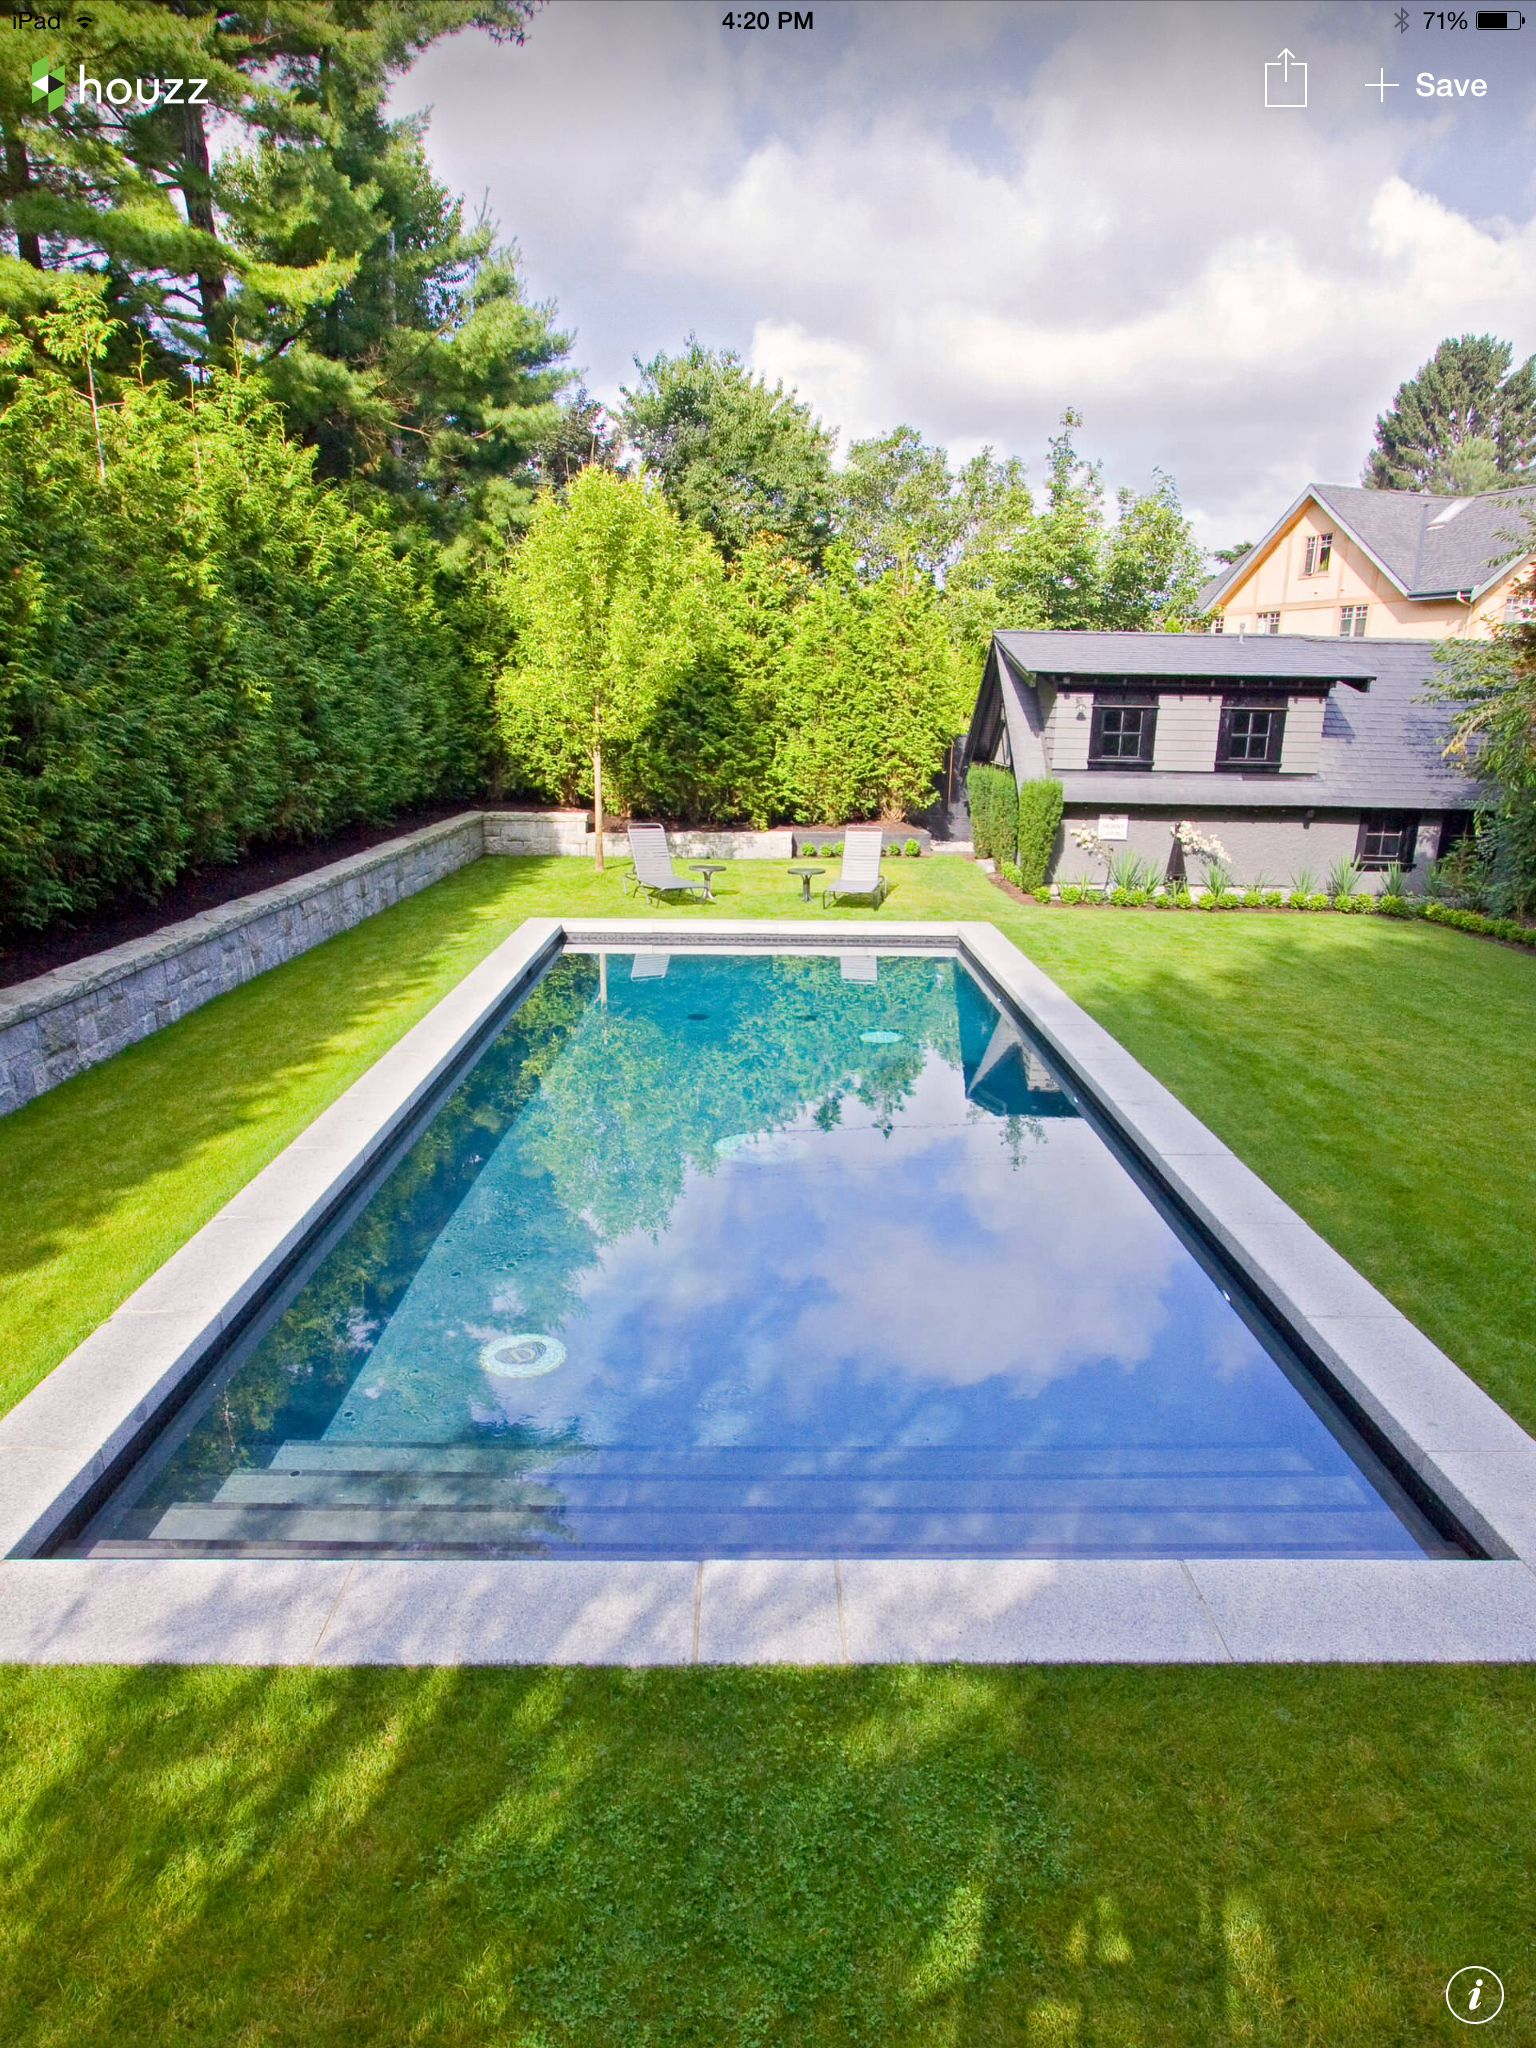 Simple classy pool outdoor decor ideas swimming for Backyard inground pool designs